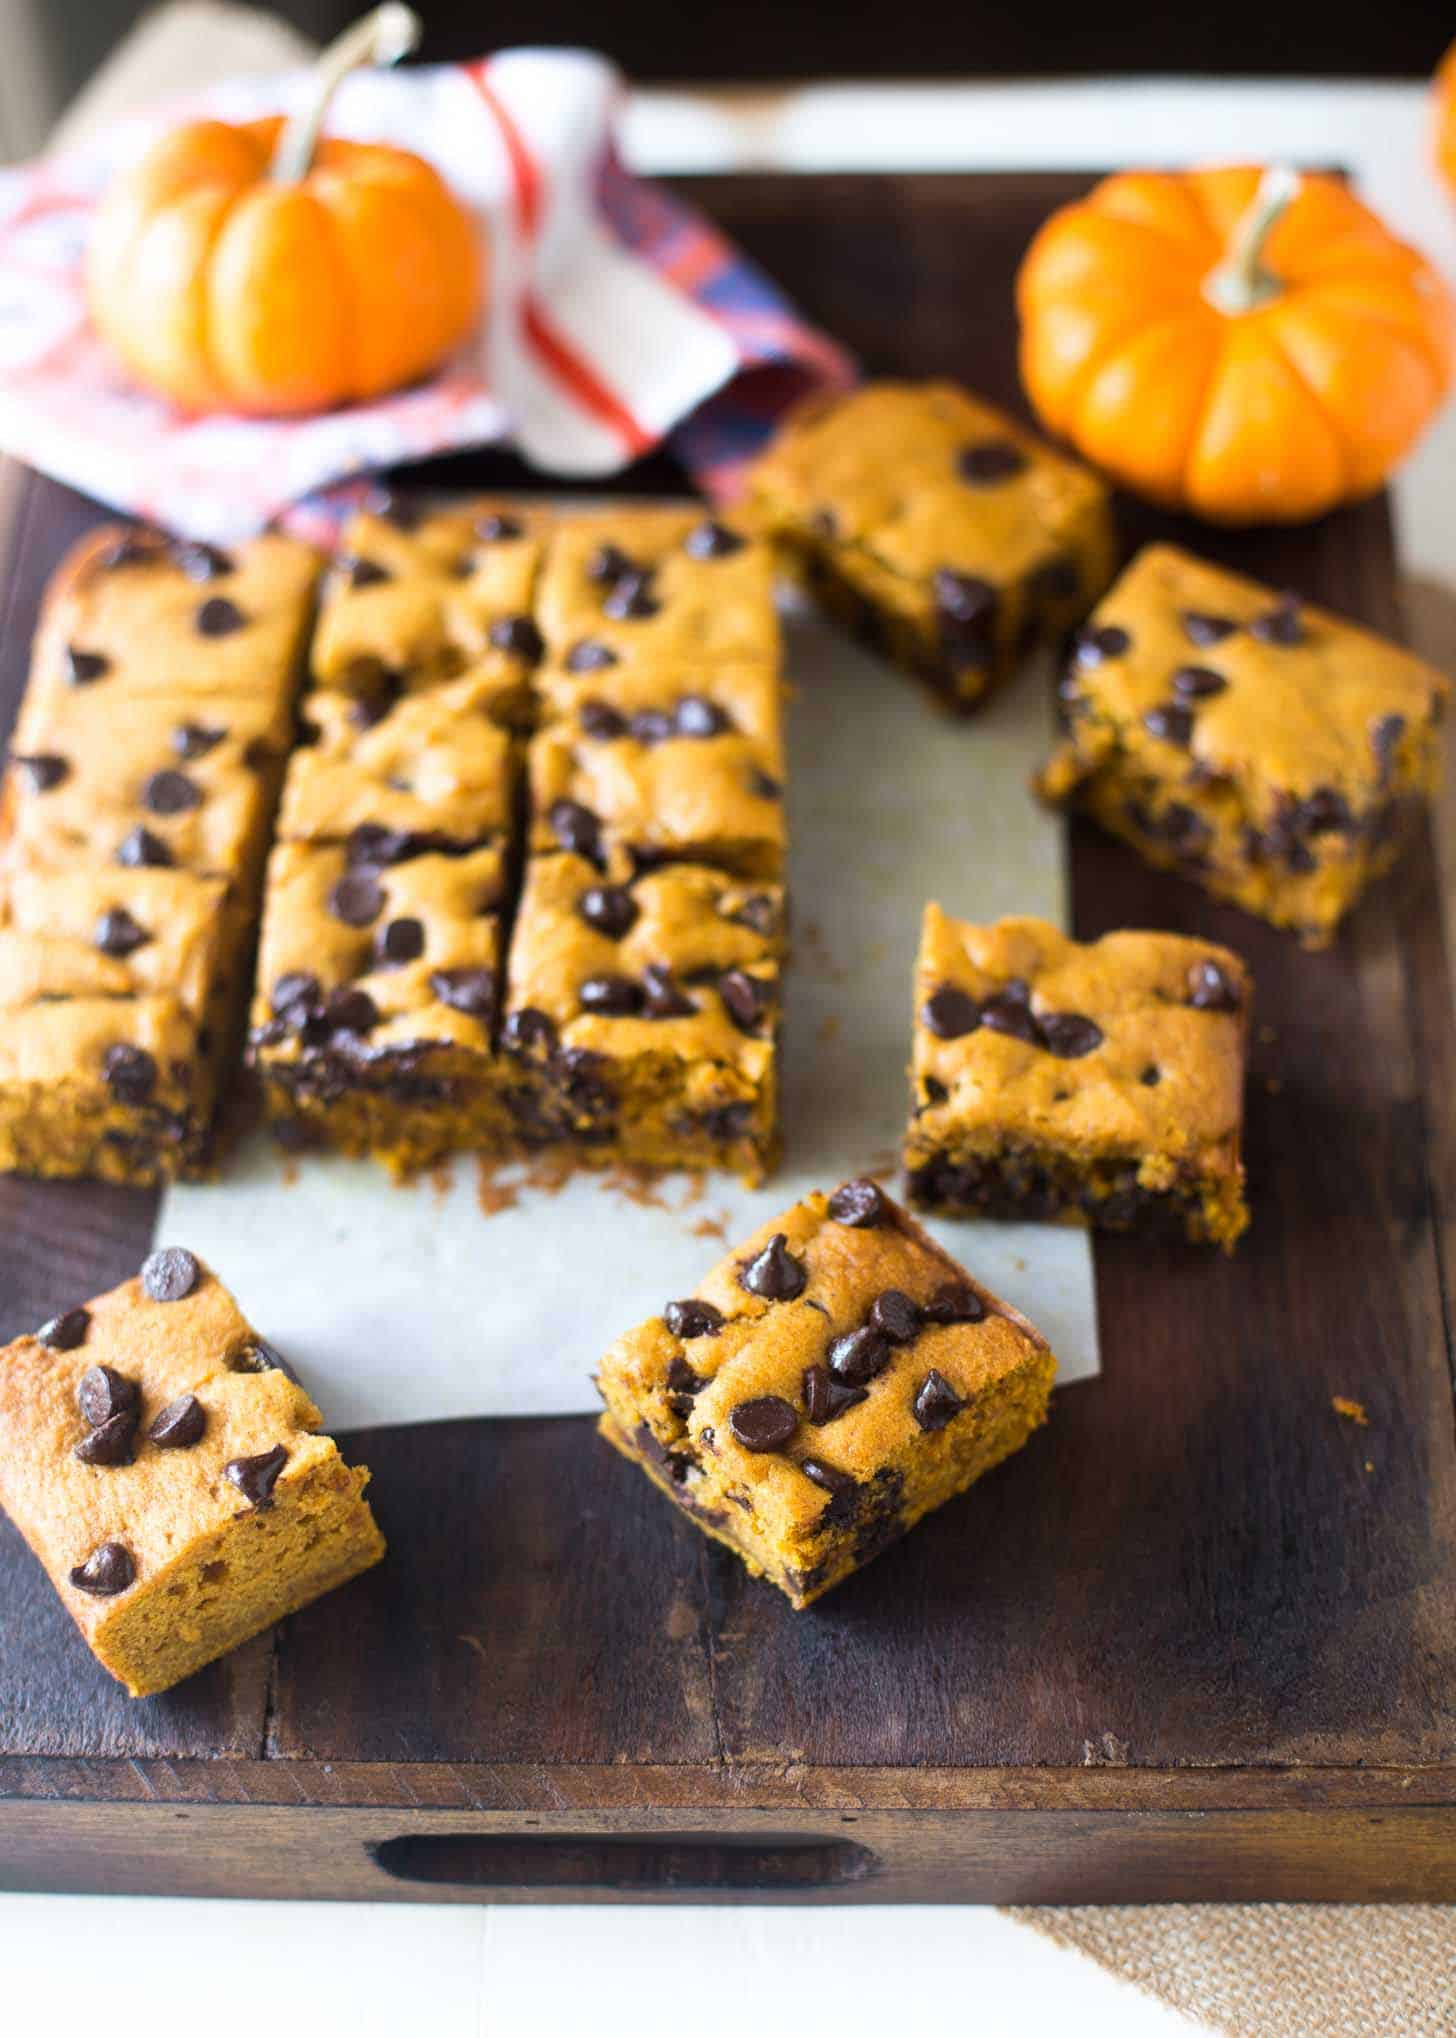 Pumpkin Chocolate Chip Snack Cake on a brown table